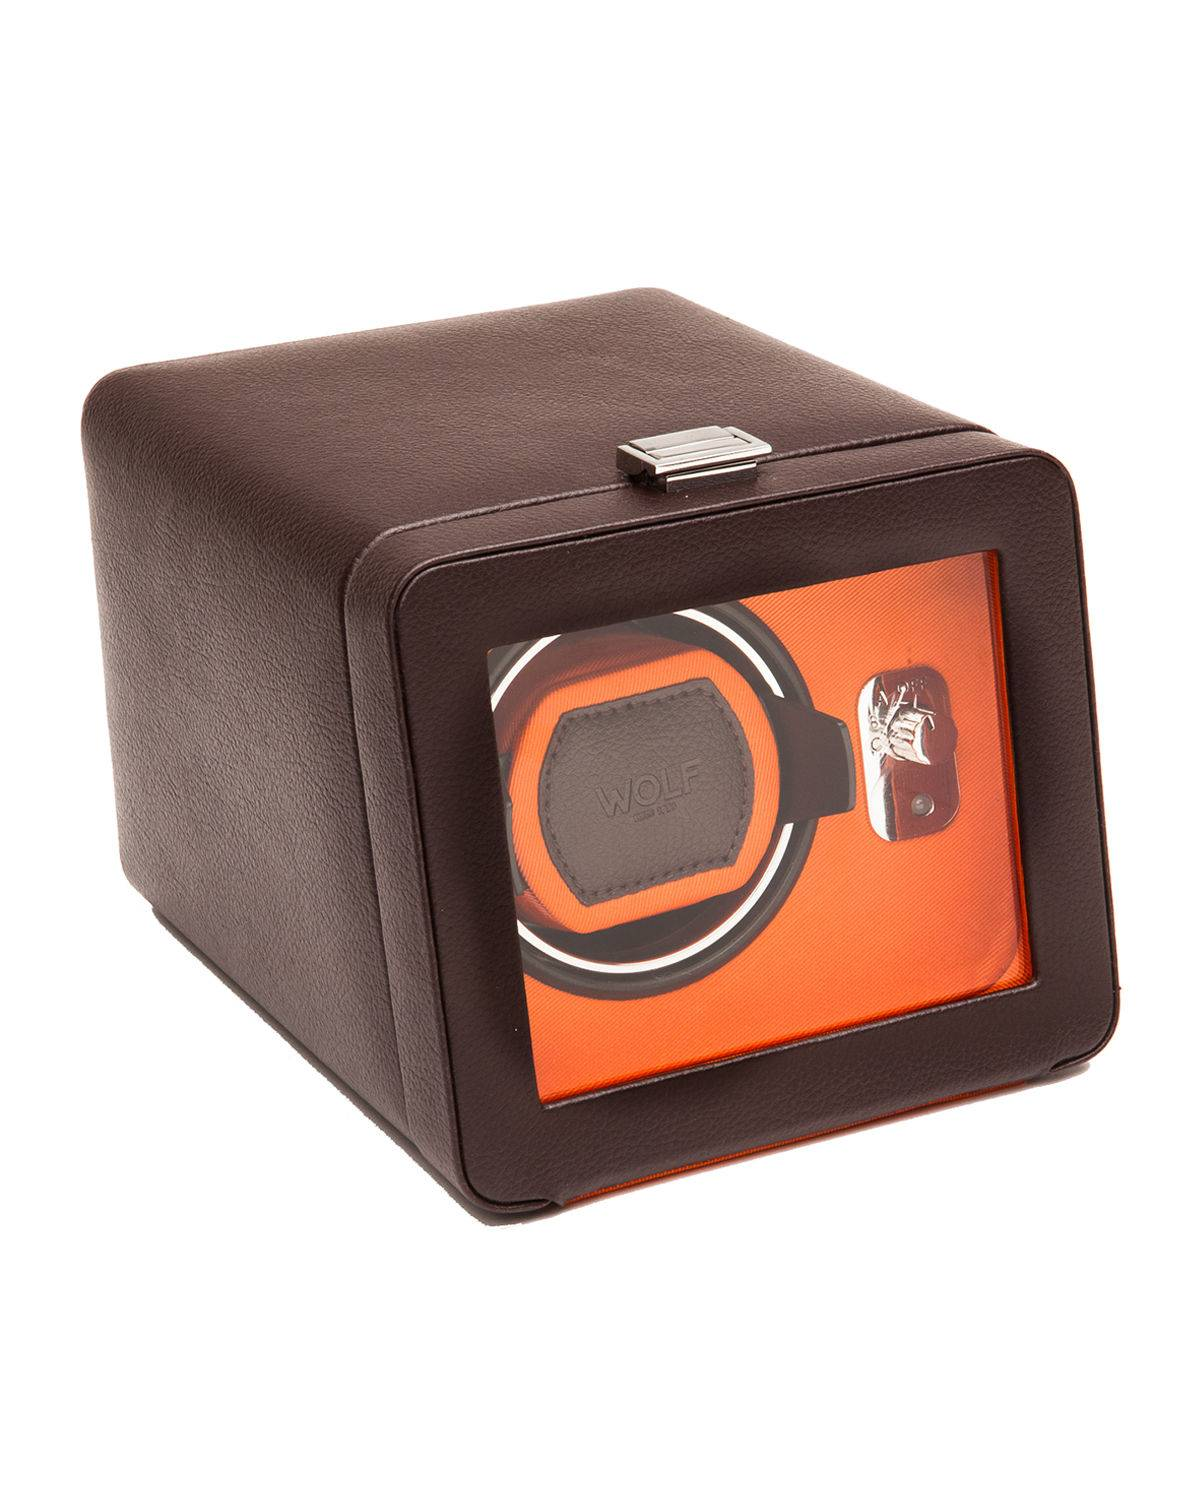 WOLF Windsor Single Watch Winder with Cover